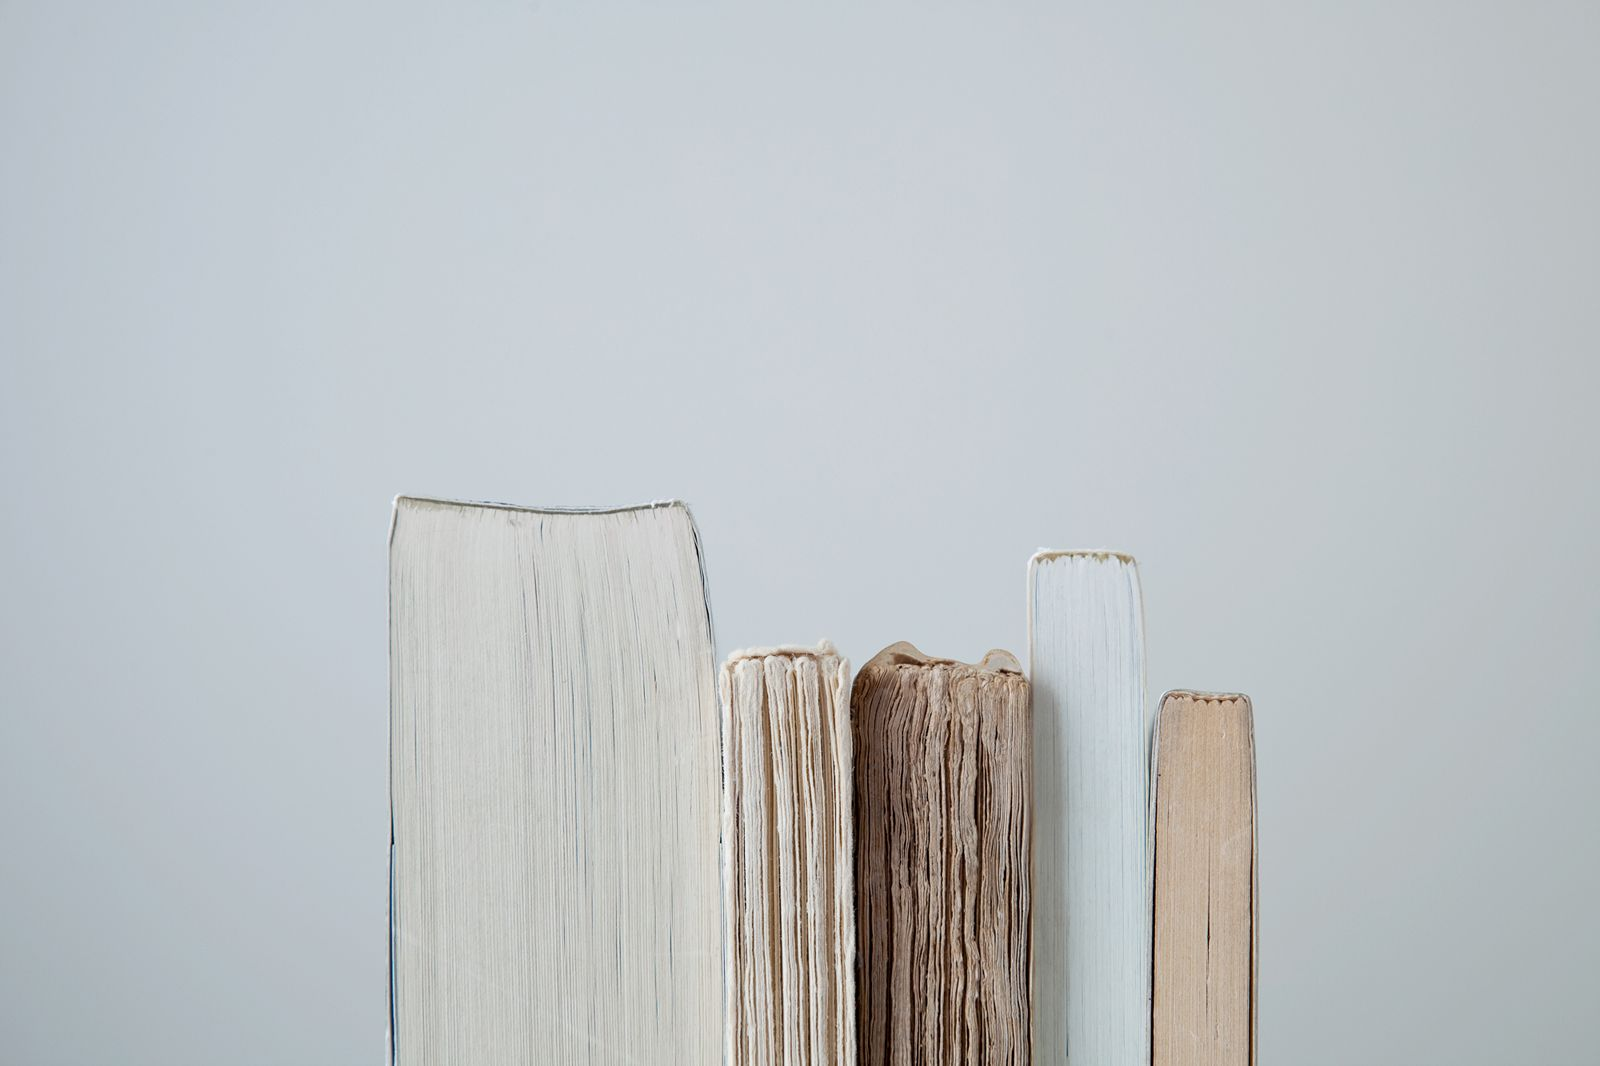 Untitled 49, from the series Paperbacks, 2010. Archival pigment print, 16 x 22 inches.